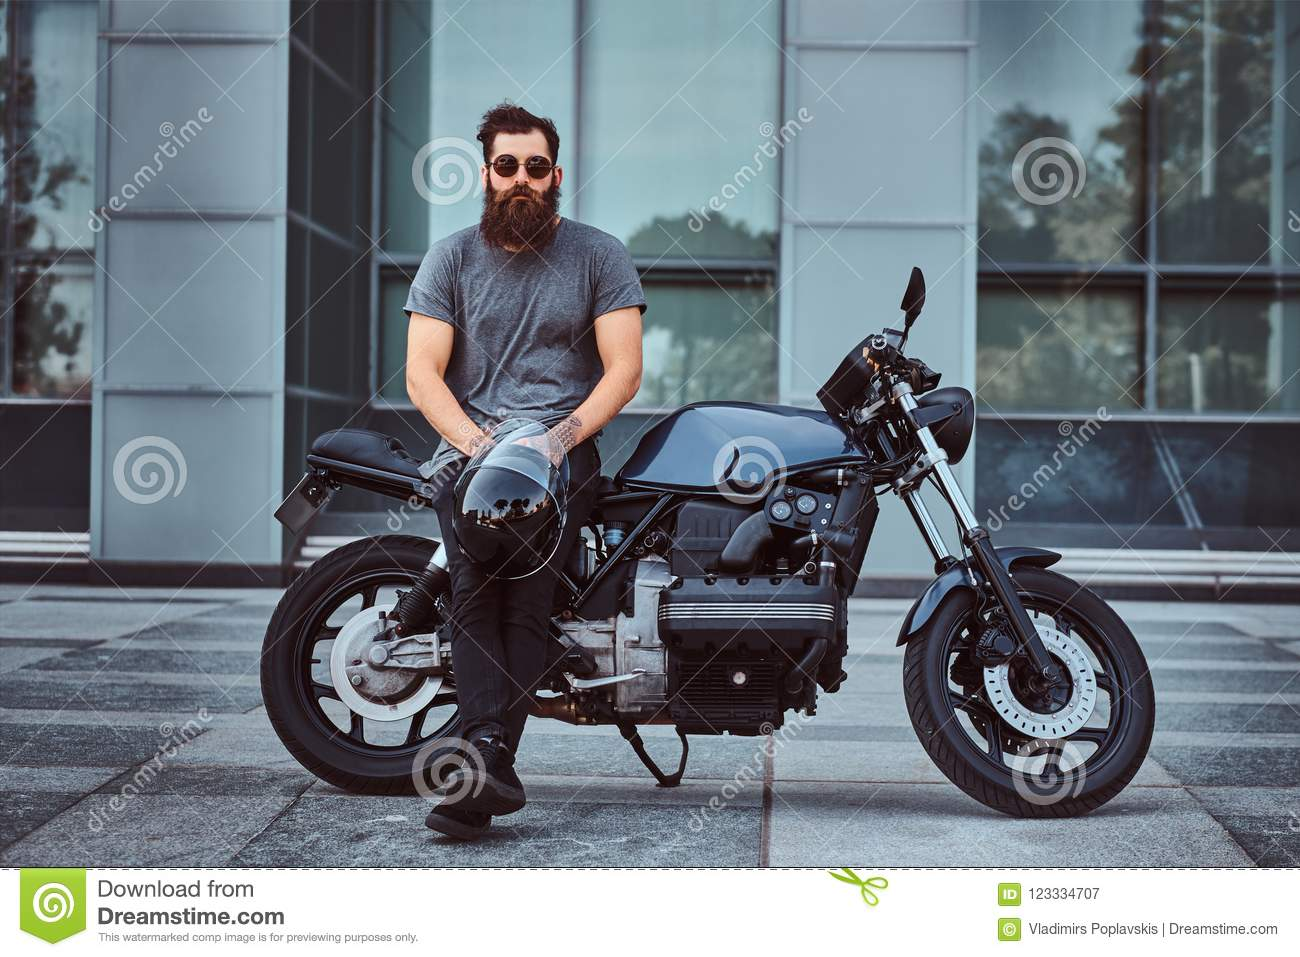 Brutal bearded male in a gray t-shirt and black pants holds a helmet sitting on his custom-made retro motorcycle against